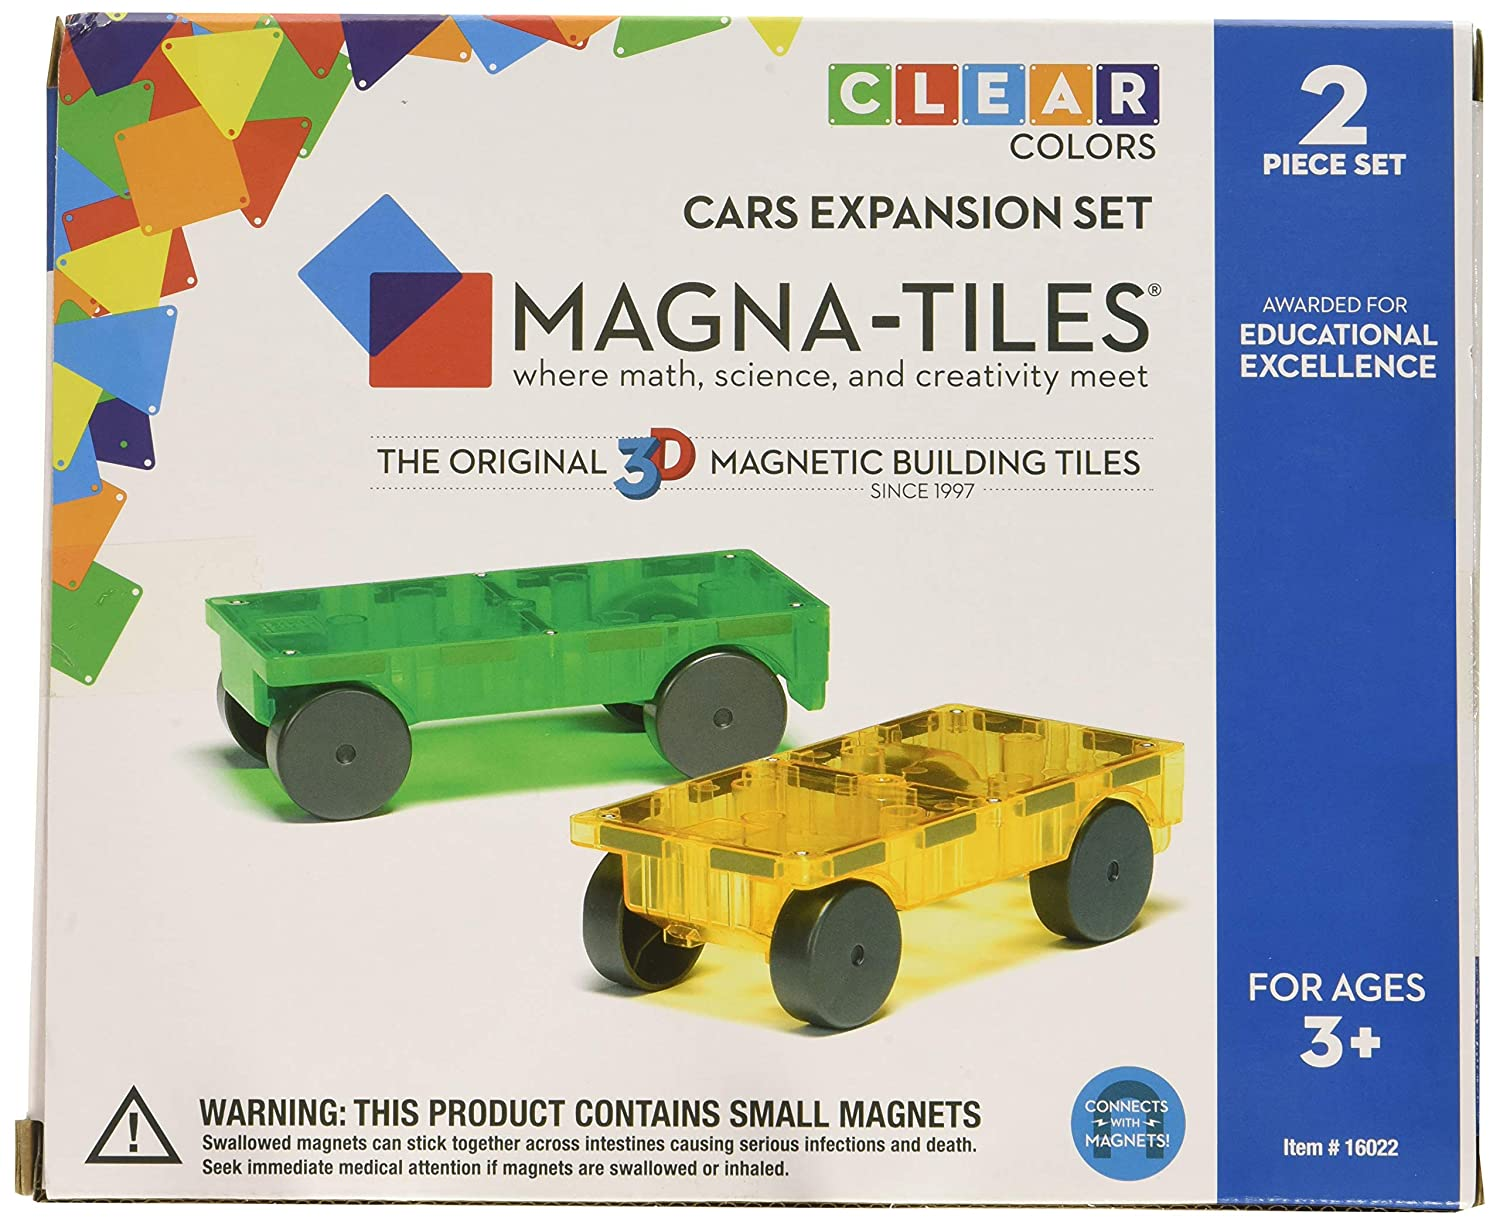 Magna-Tiles 2 Piece Car Expansion Set Valtech 16022